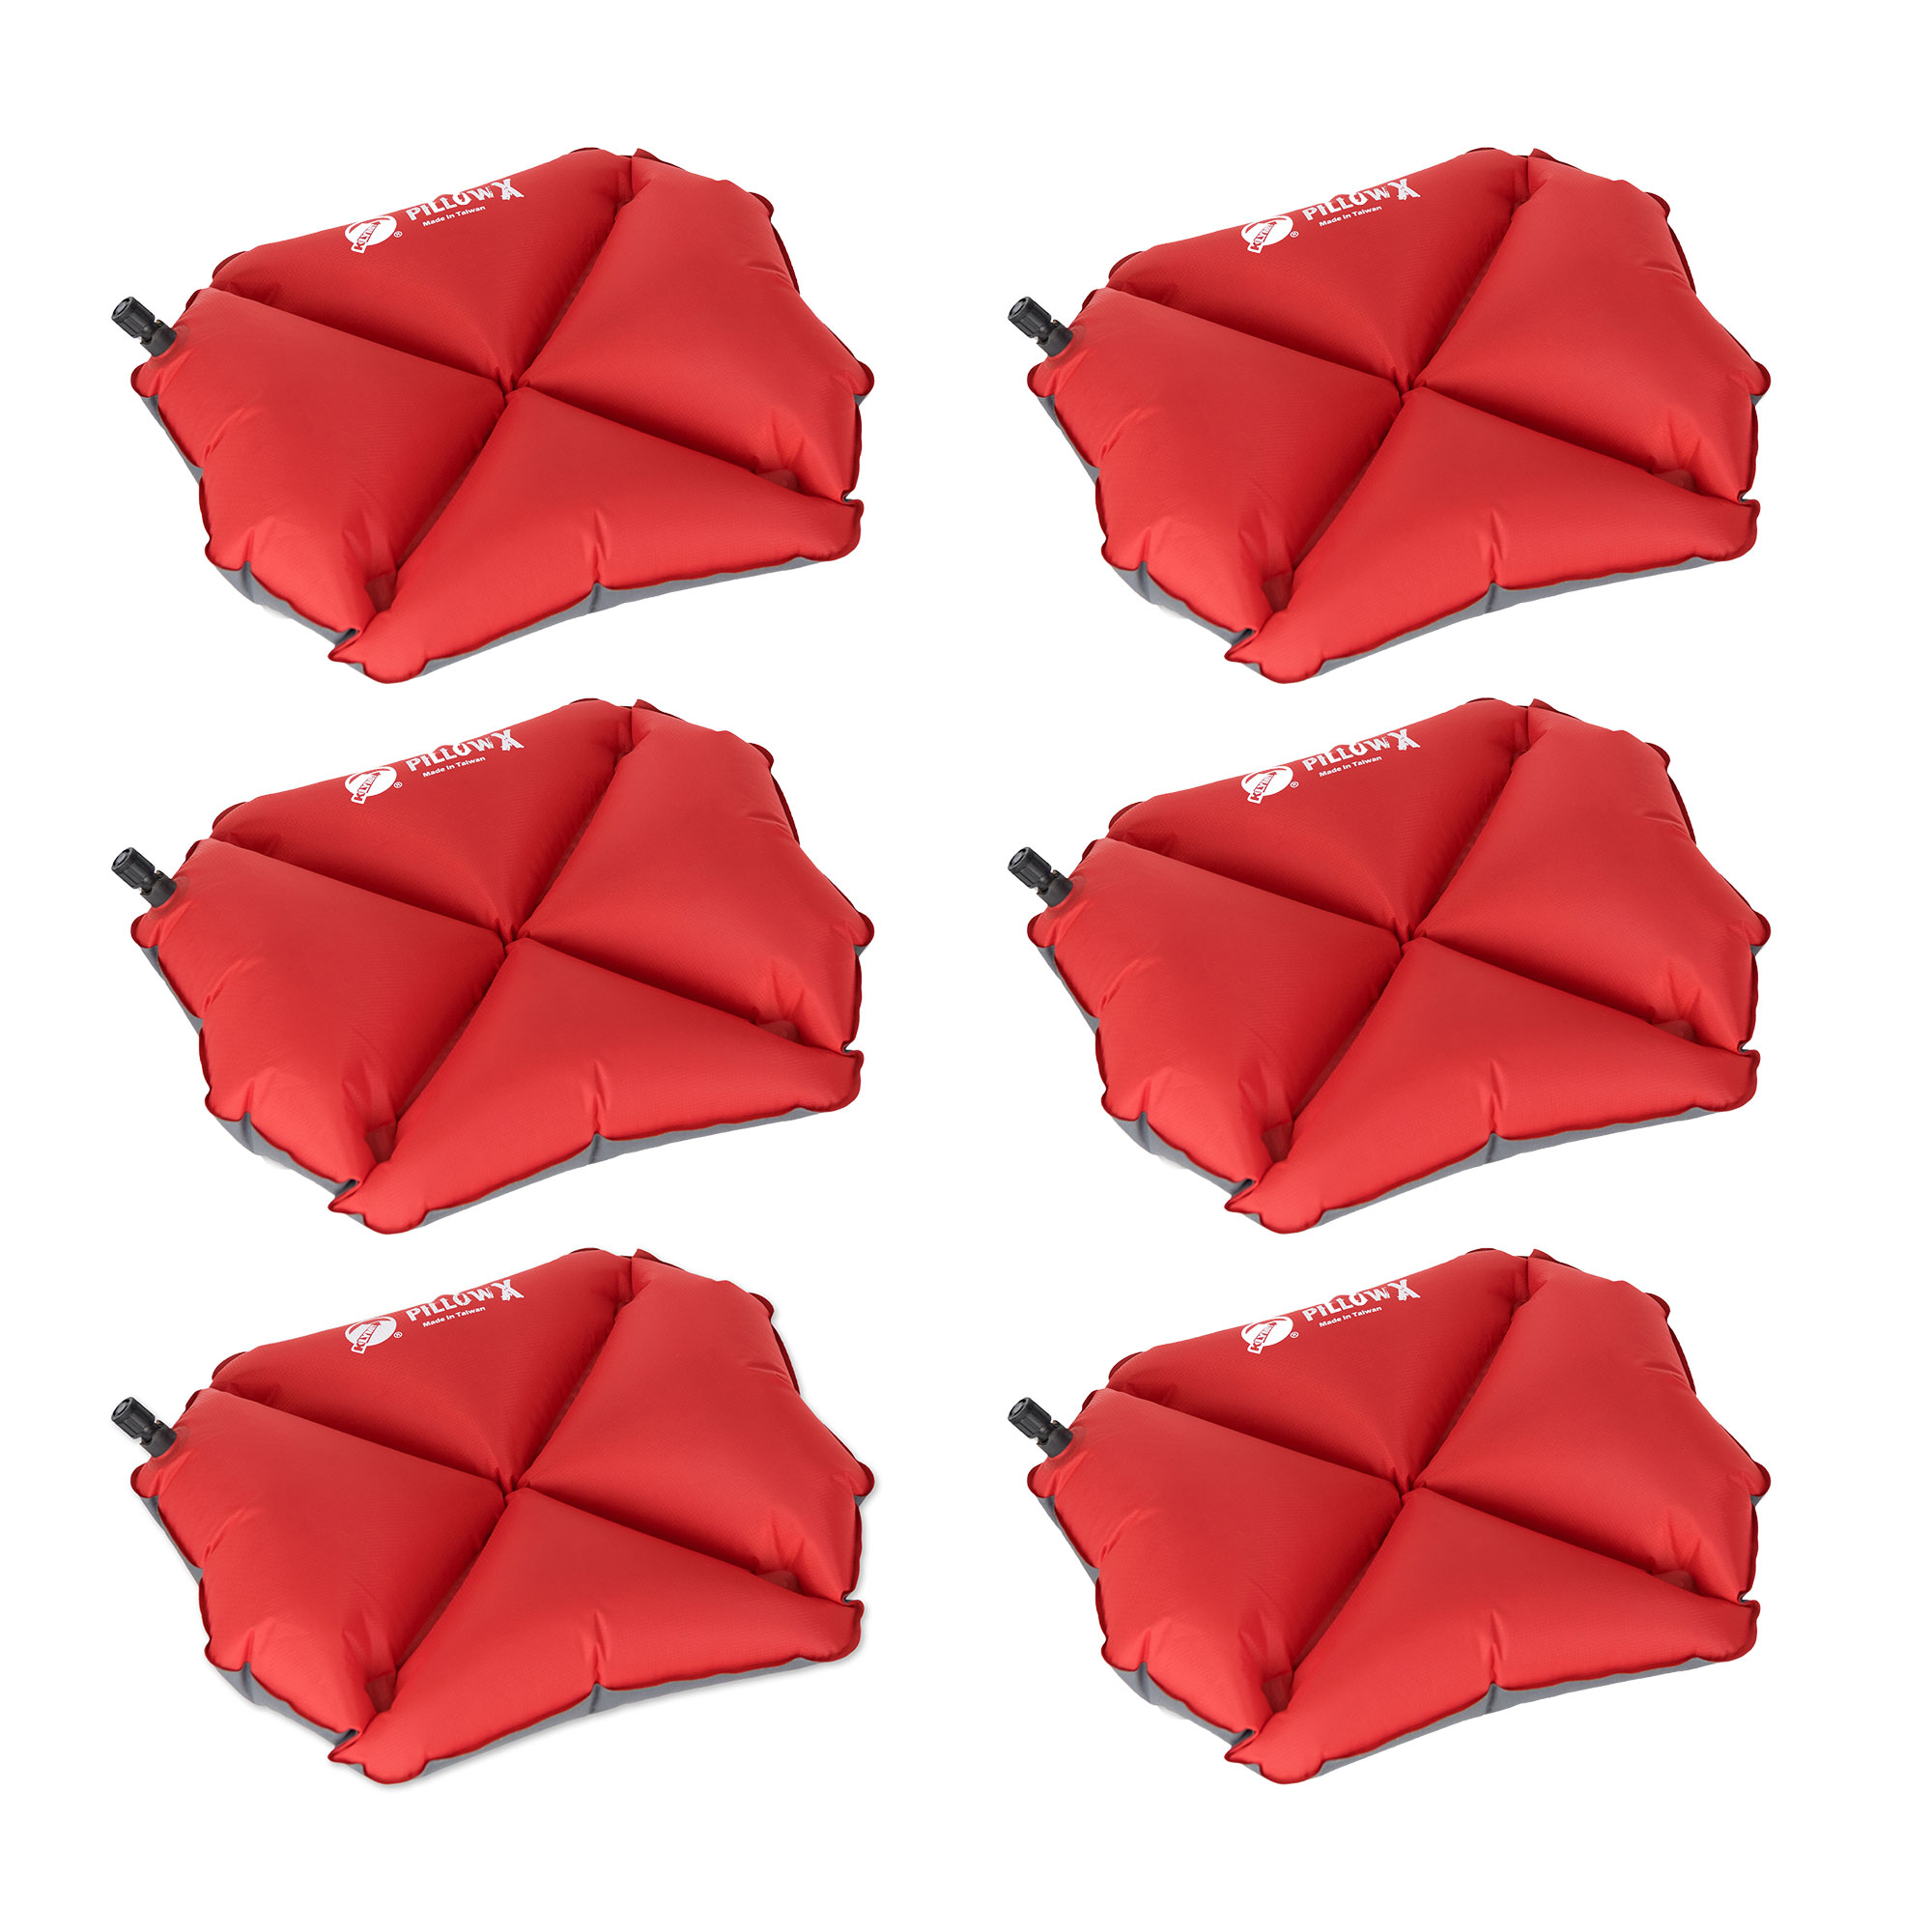 Klymit Pillow X Soft Ultralight Inflatable Travel Camping Pillow, Red (10 Pack)